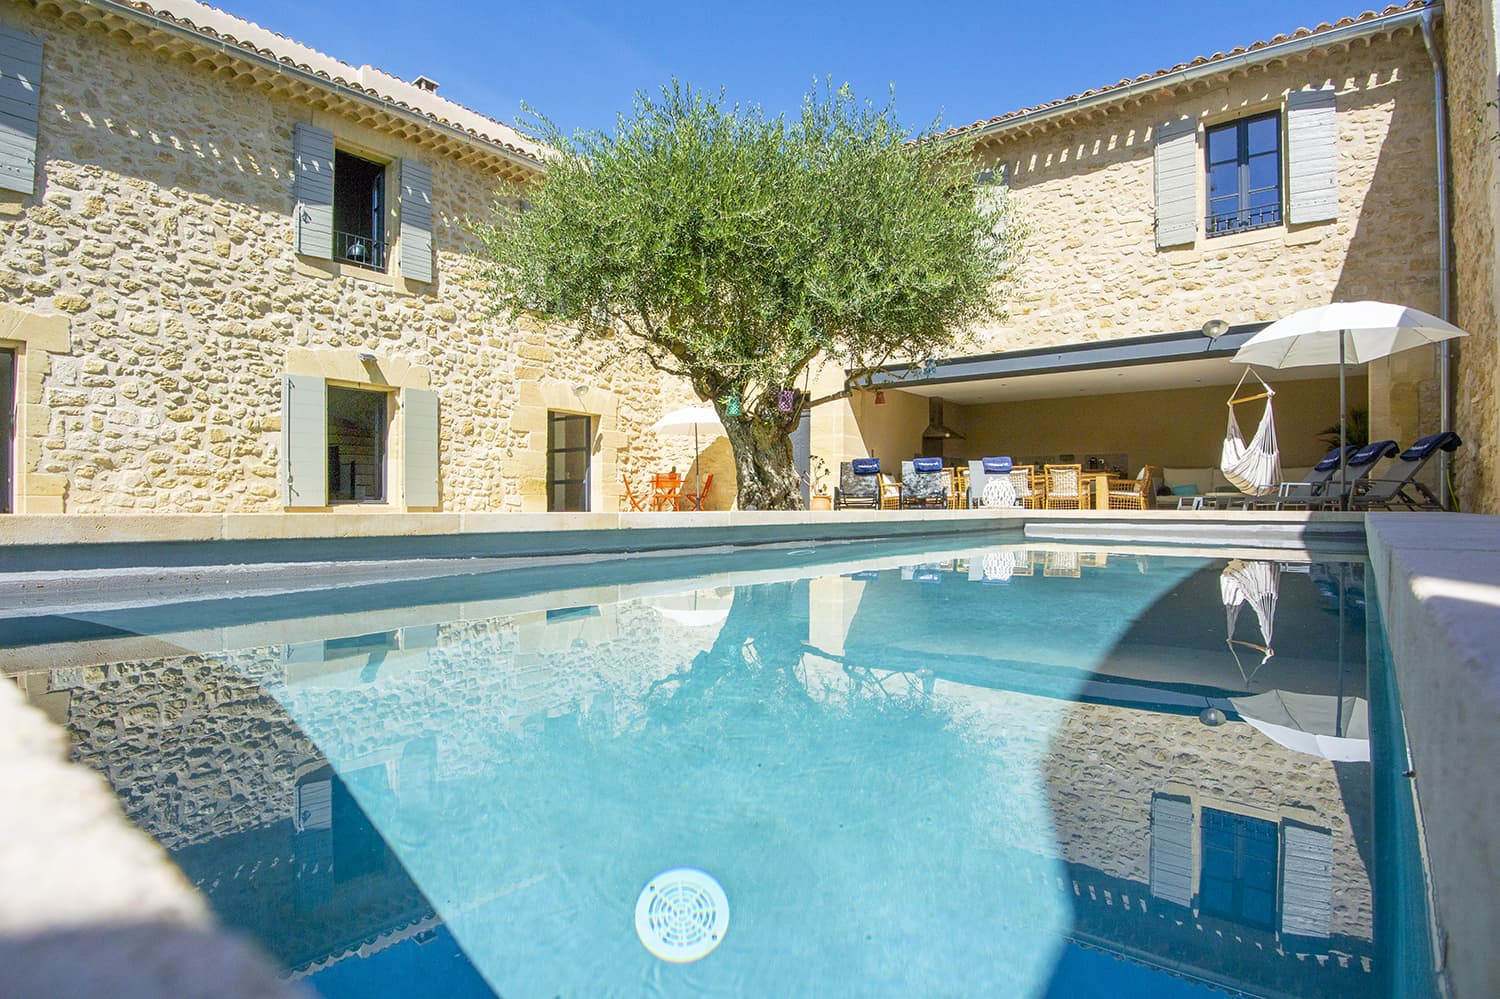 Holiday home in Cadenet, Provence-Alpes-Côte d'Azur, with private pool